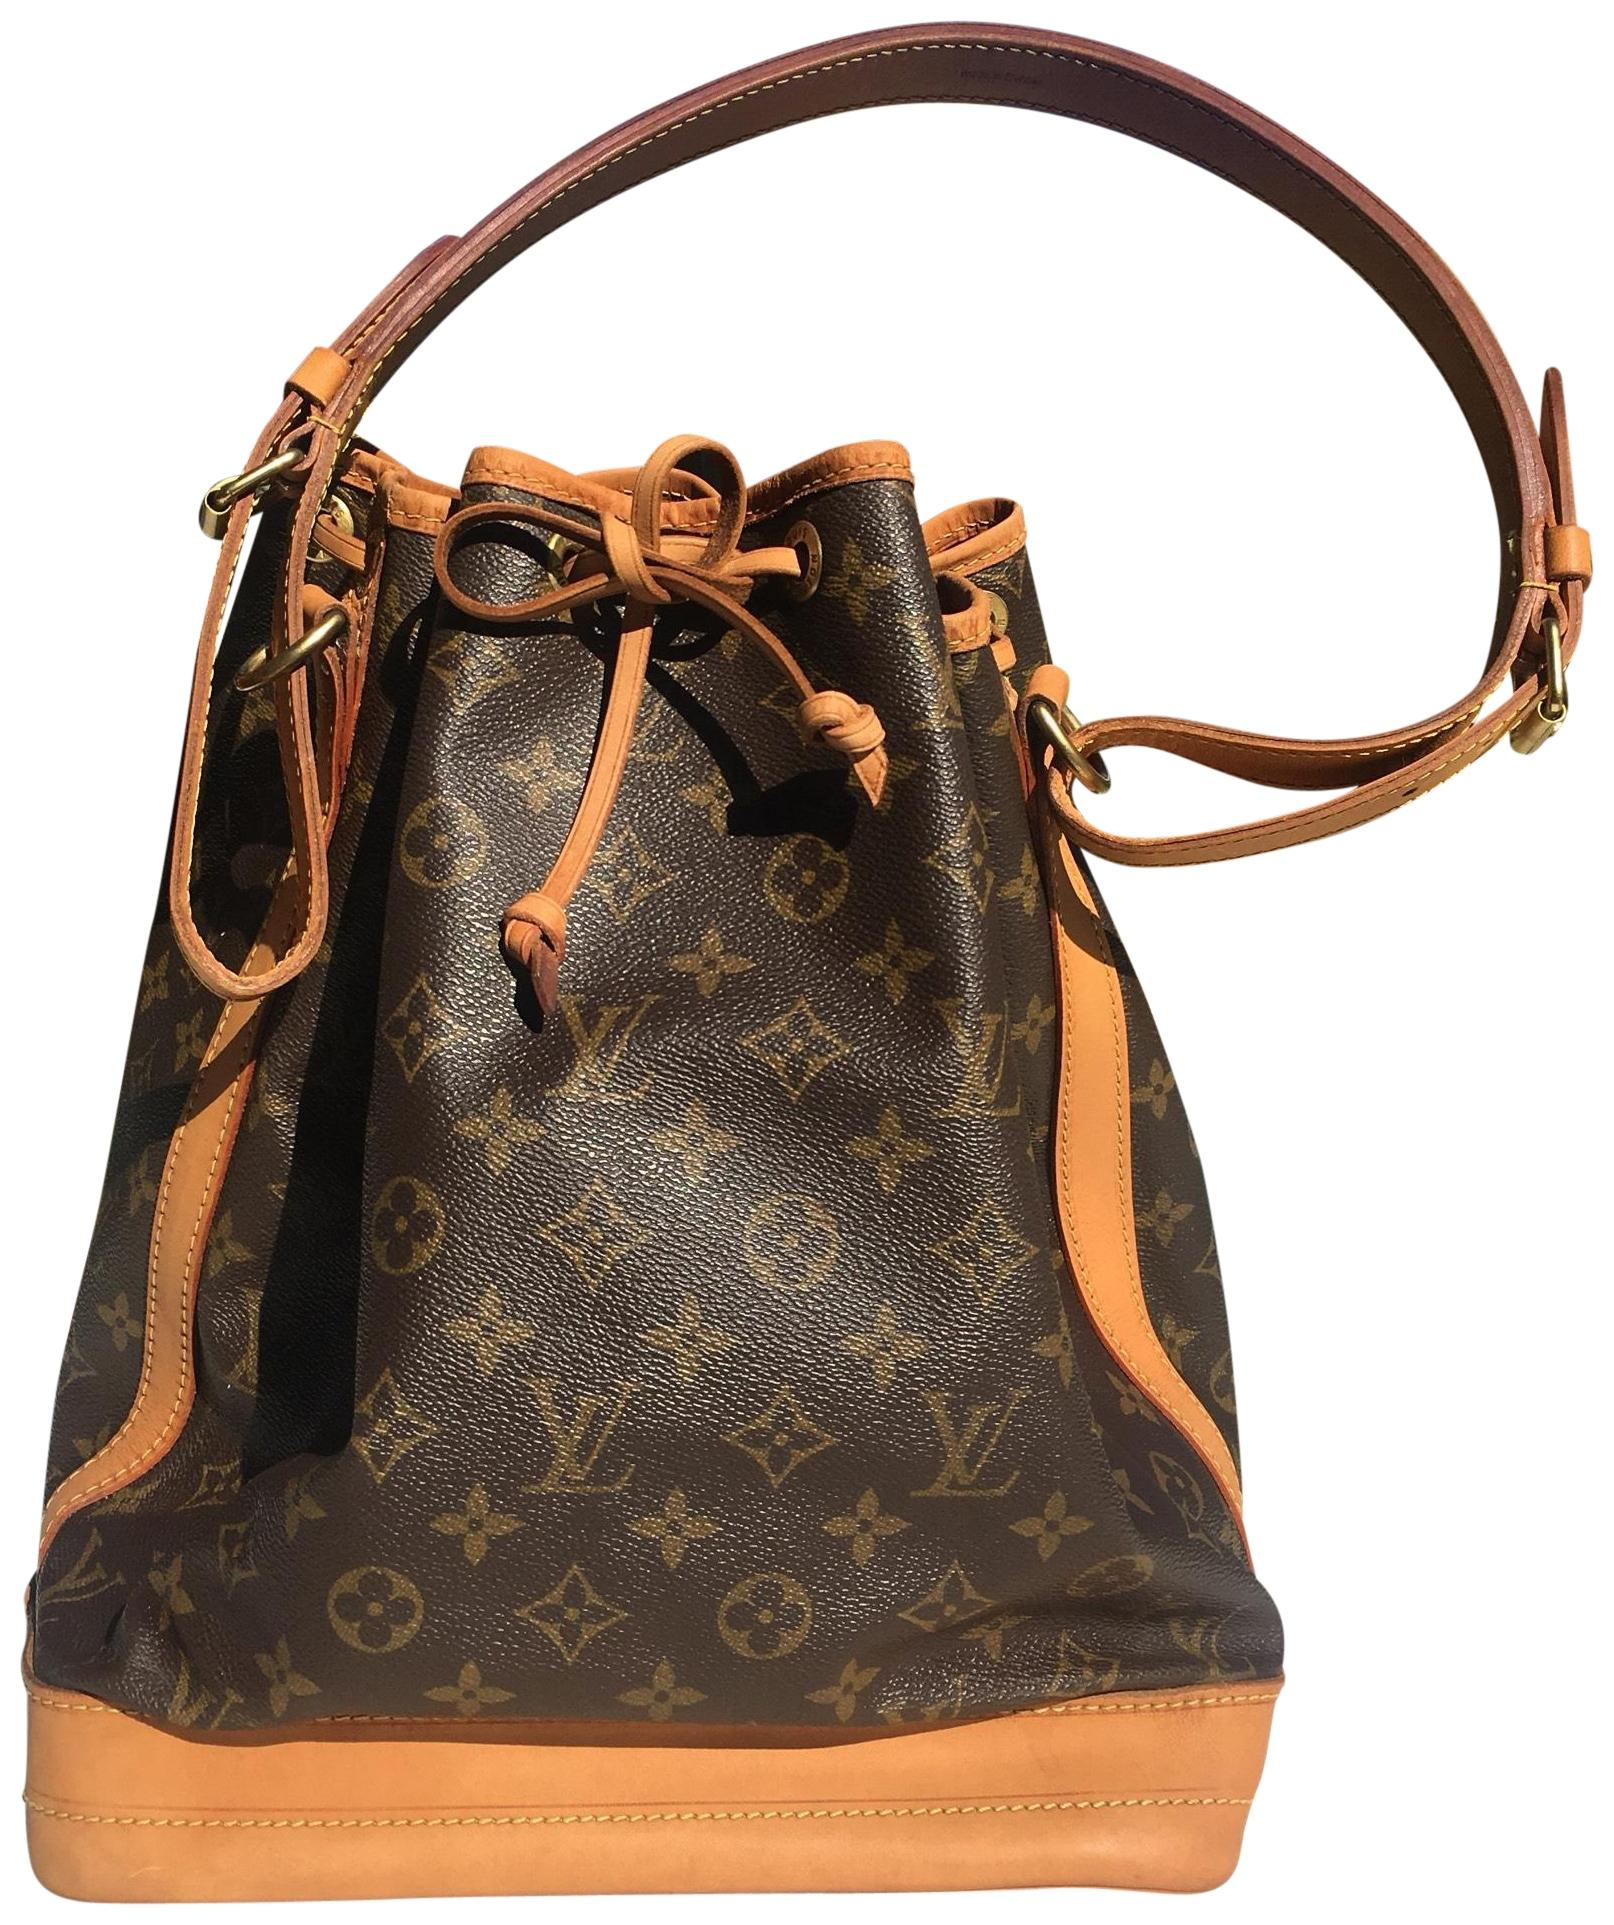 louis vuitton factory outlet. louis vuitton shoulder bag factory outlet i